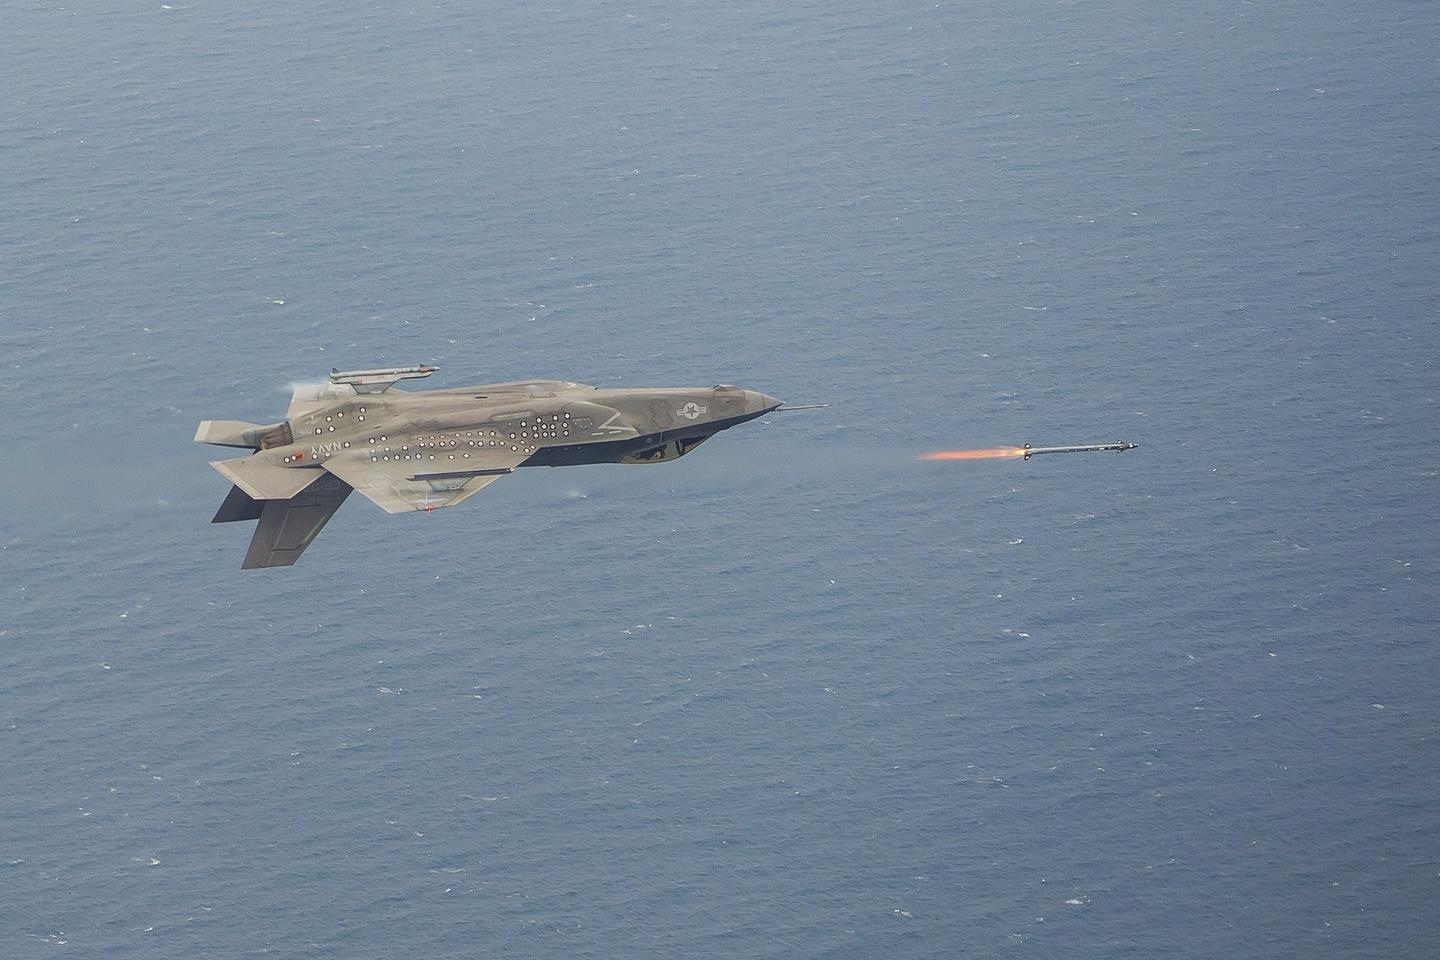 An inverted F-35C launches anAIM-9X missile during a live fire test event